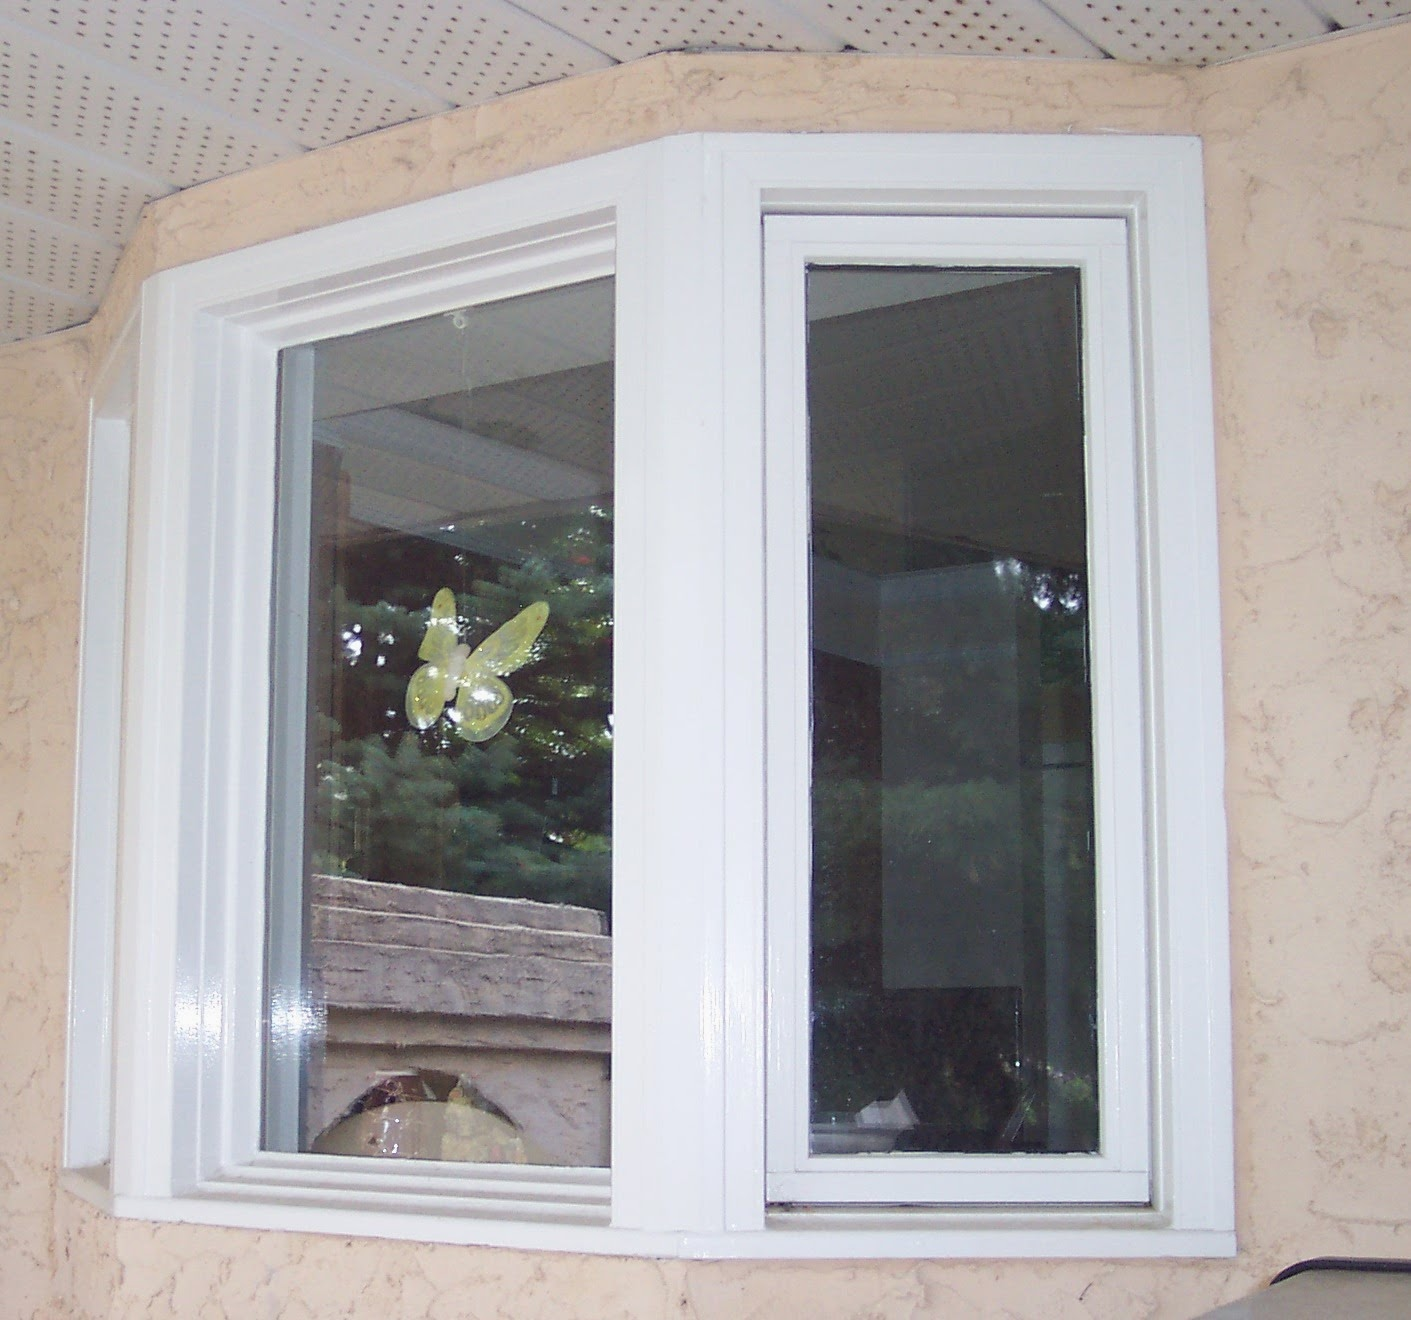 capitall window and door blog why should i buy custom